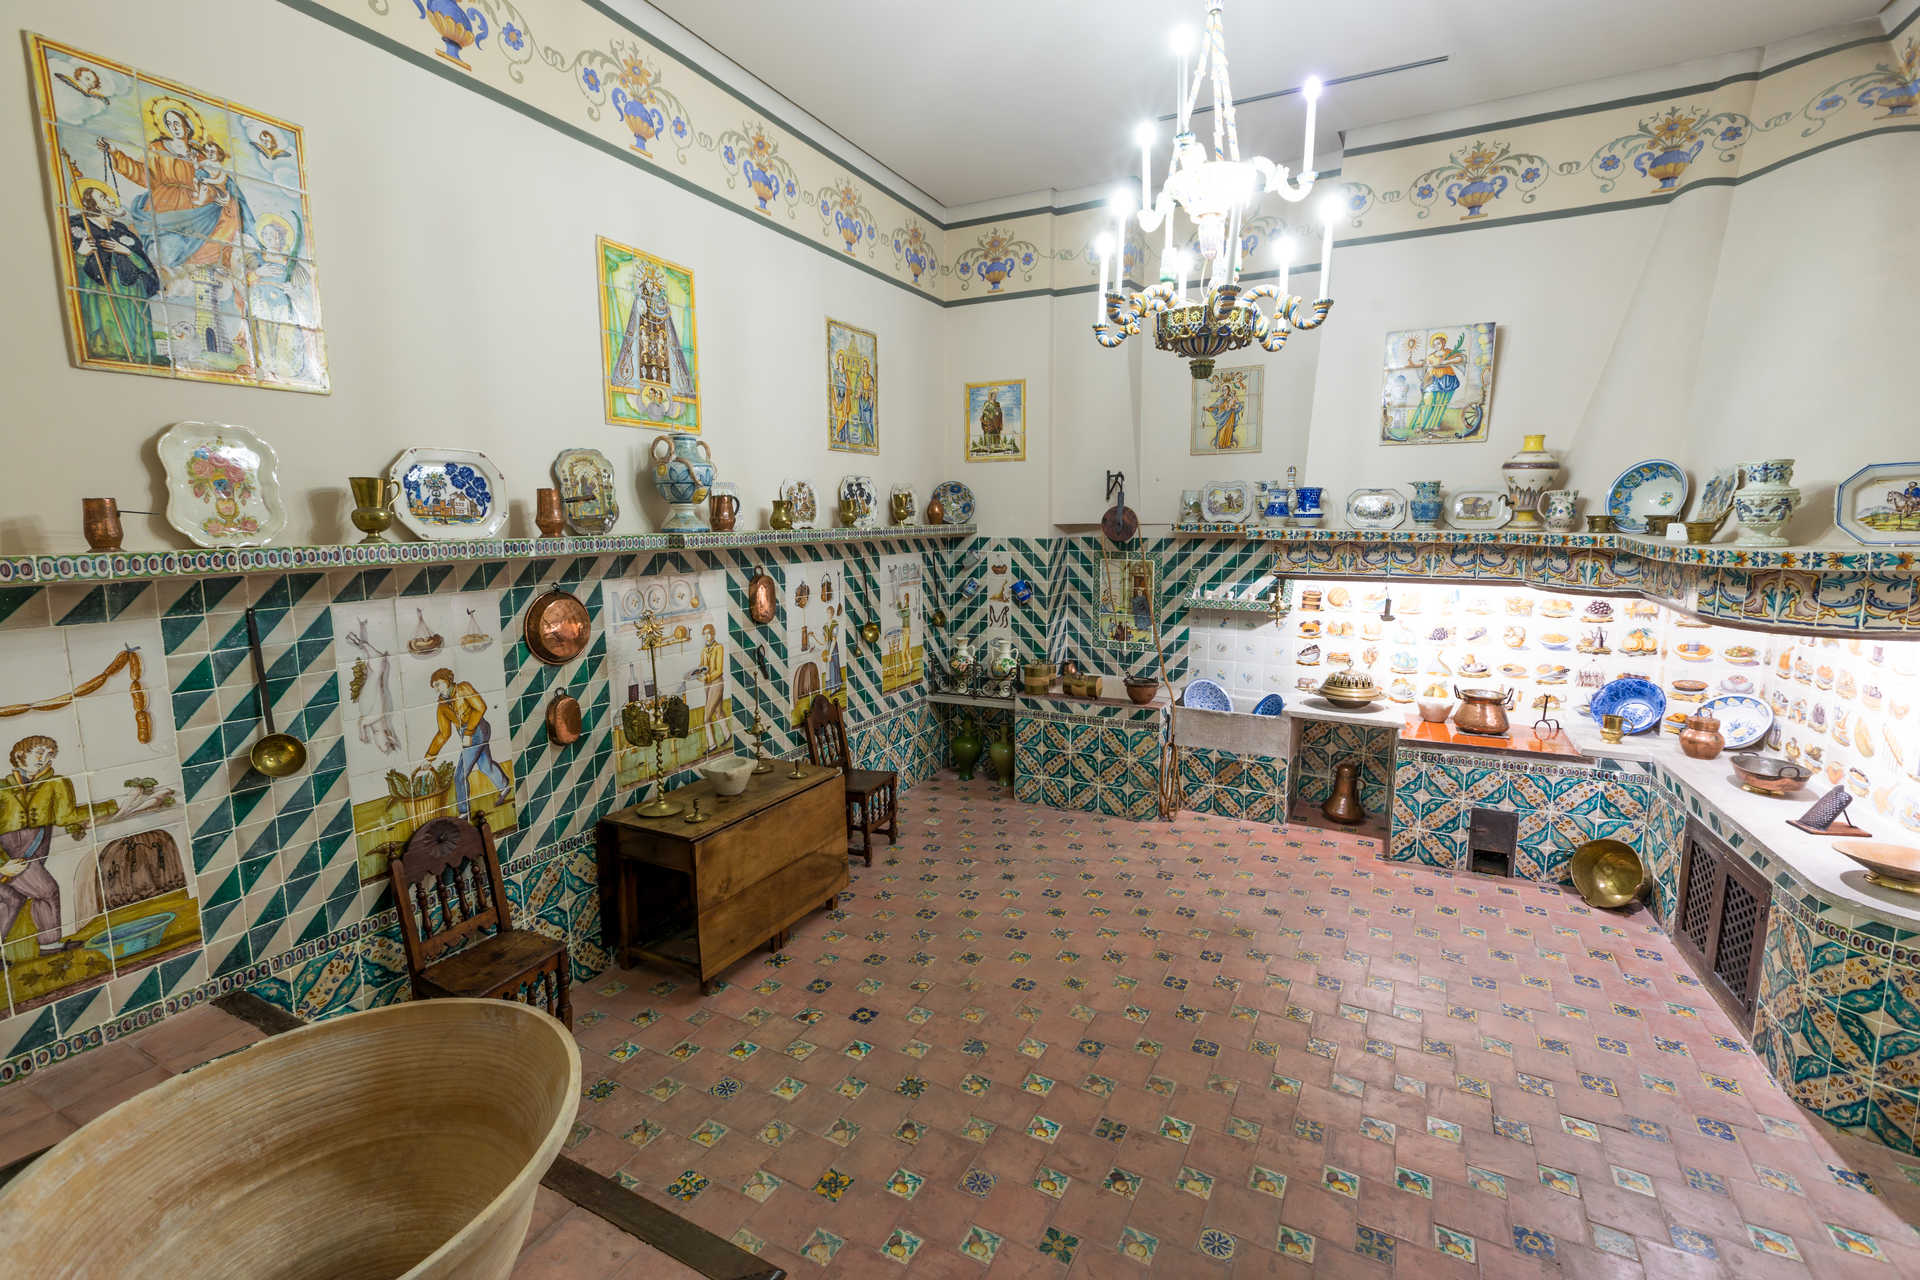 The National Ceramics And Sumptuary Arts Museum González Martí